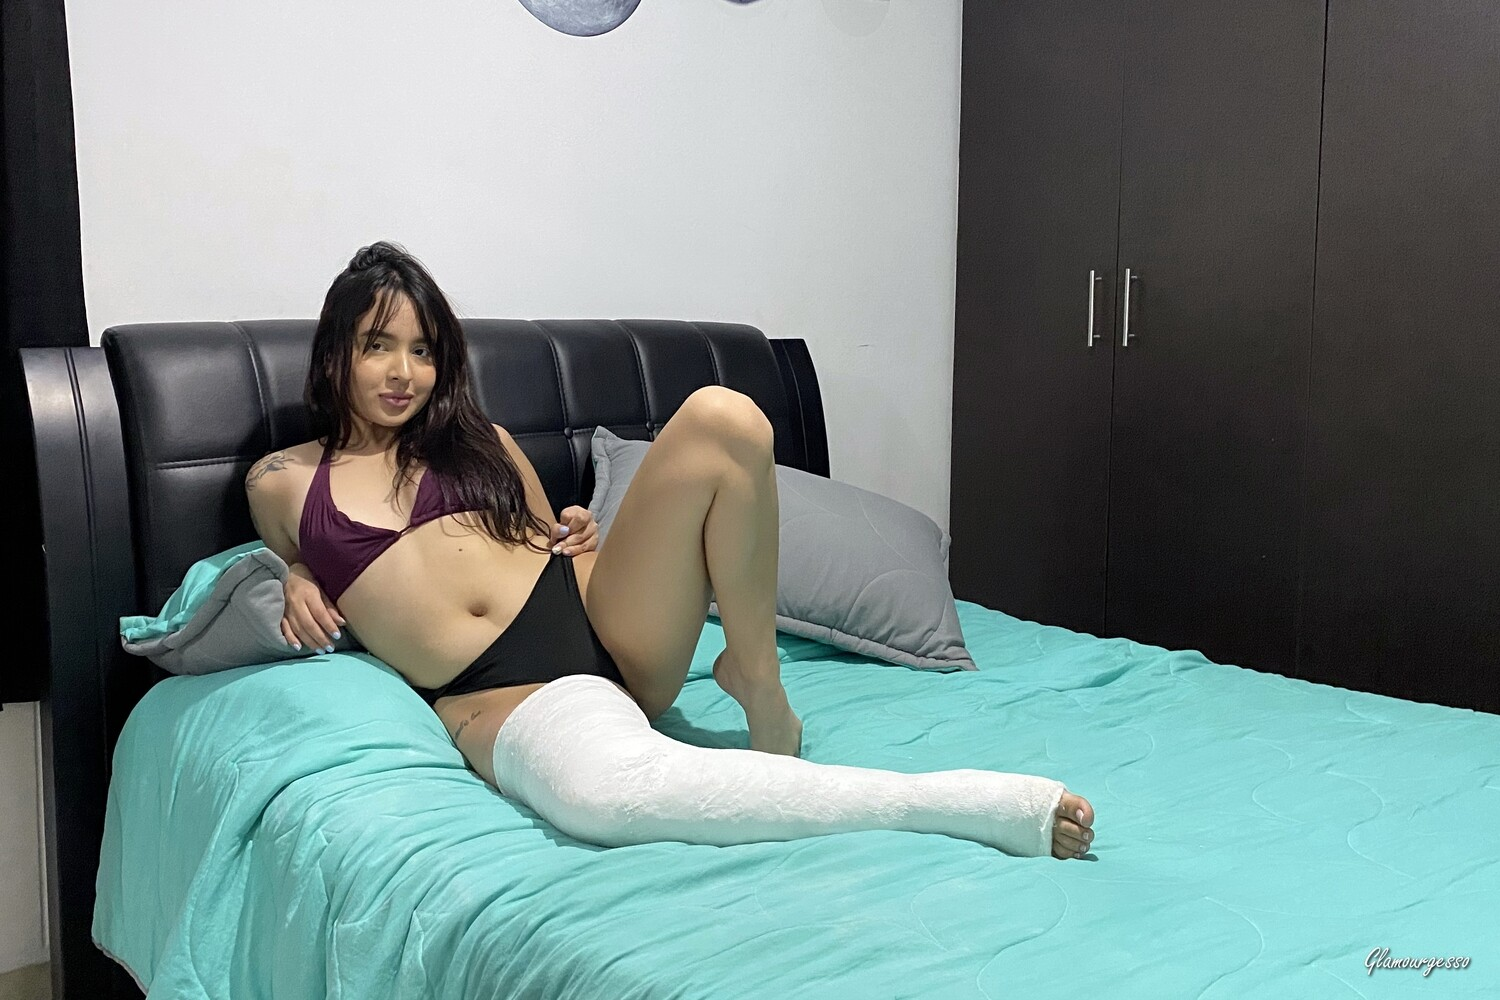 Colombian amateur model Juliana acts in an extremely sexy and involving story leading her in a DUAL_LLC making her able to move only with her wheelchair.  You will follow her in an extremely long walk on crutches in the streets of her city